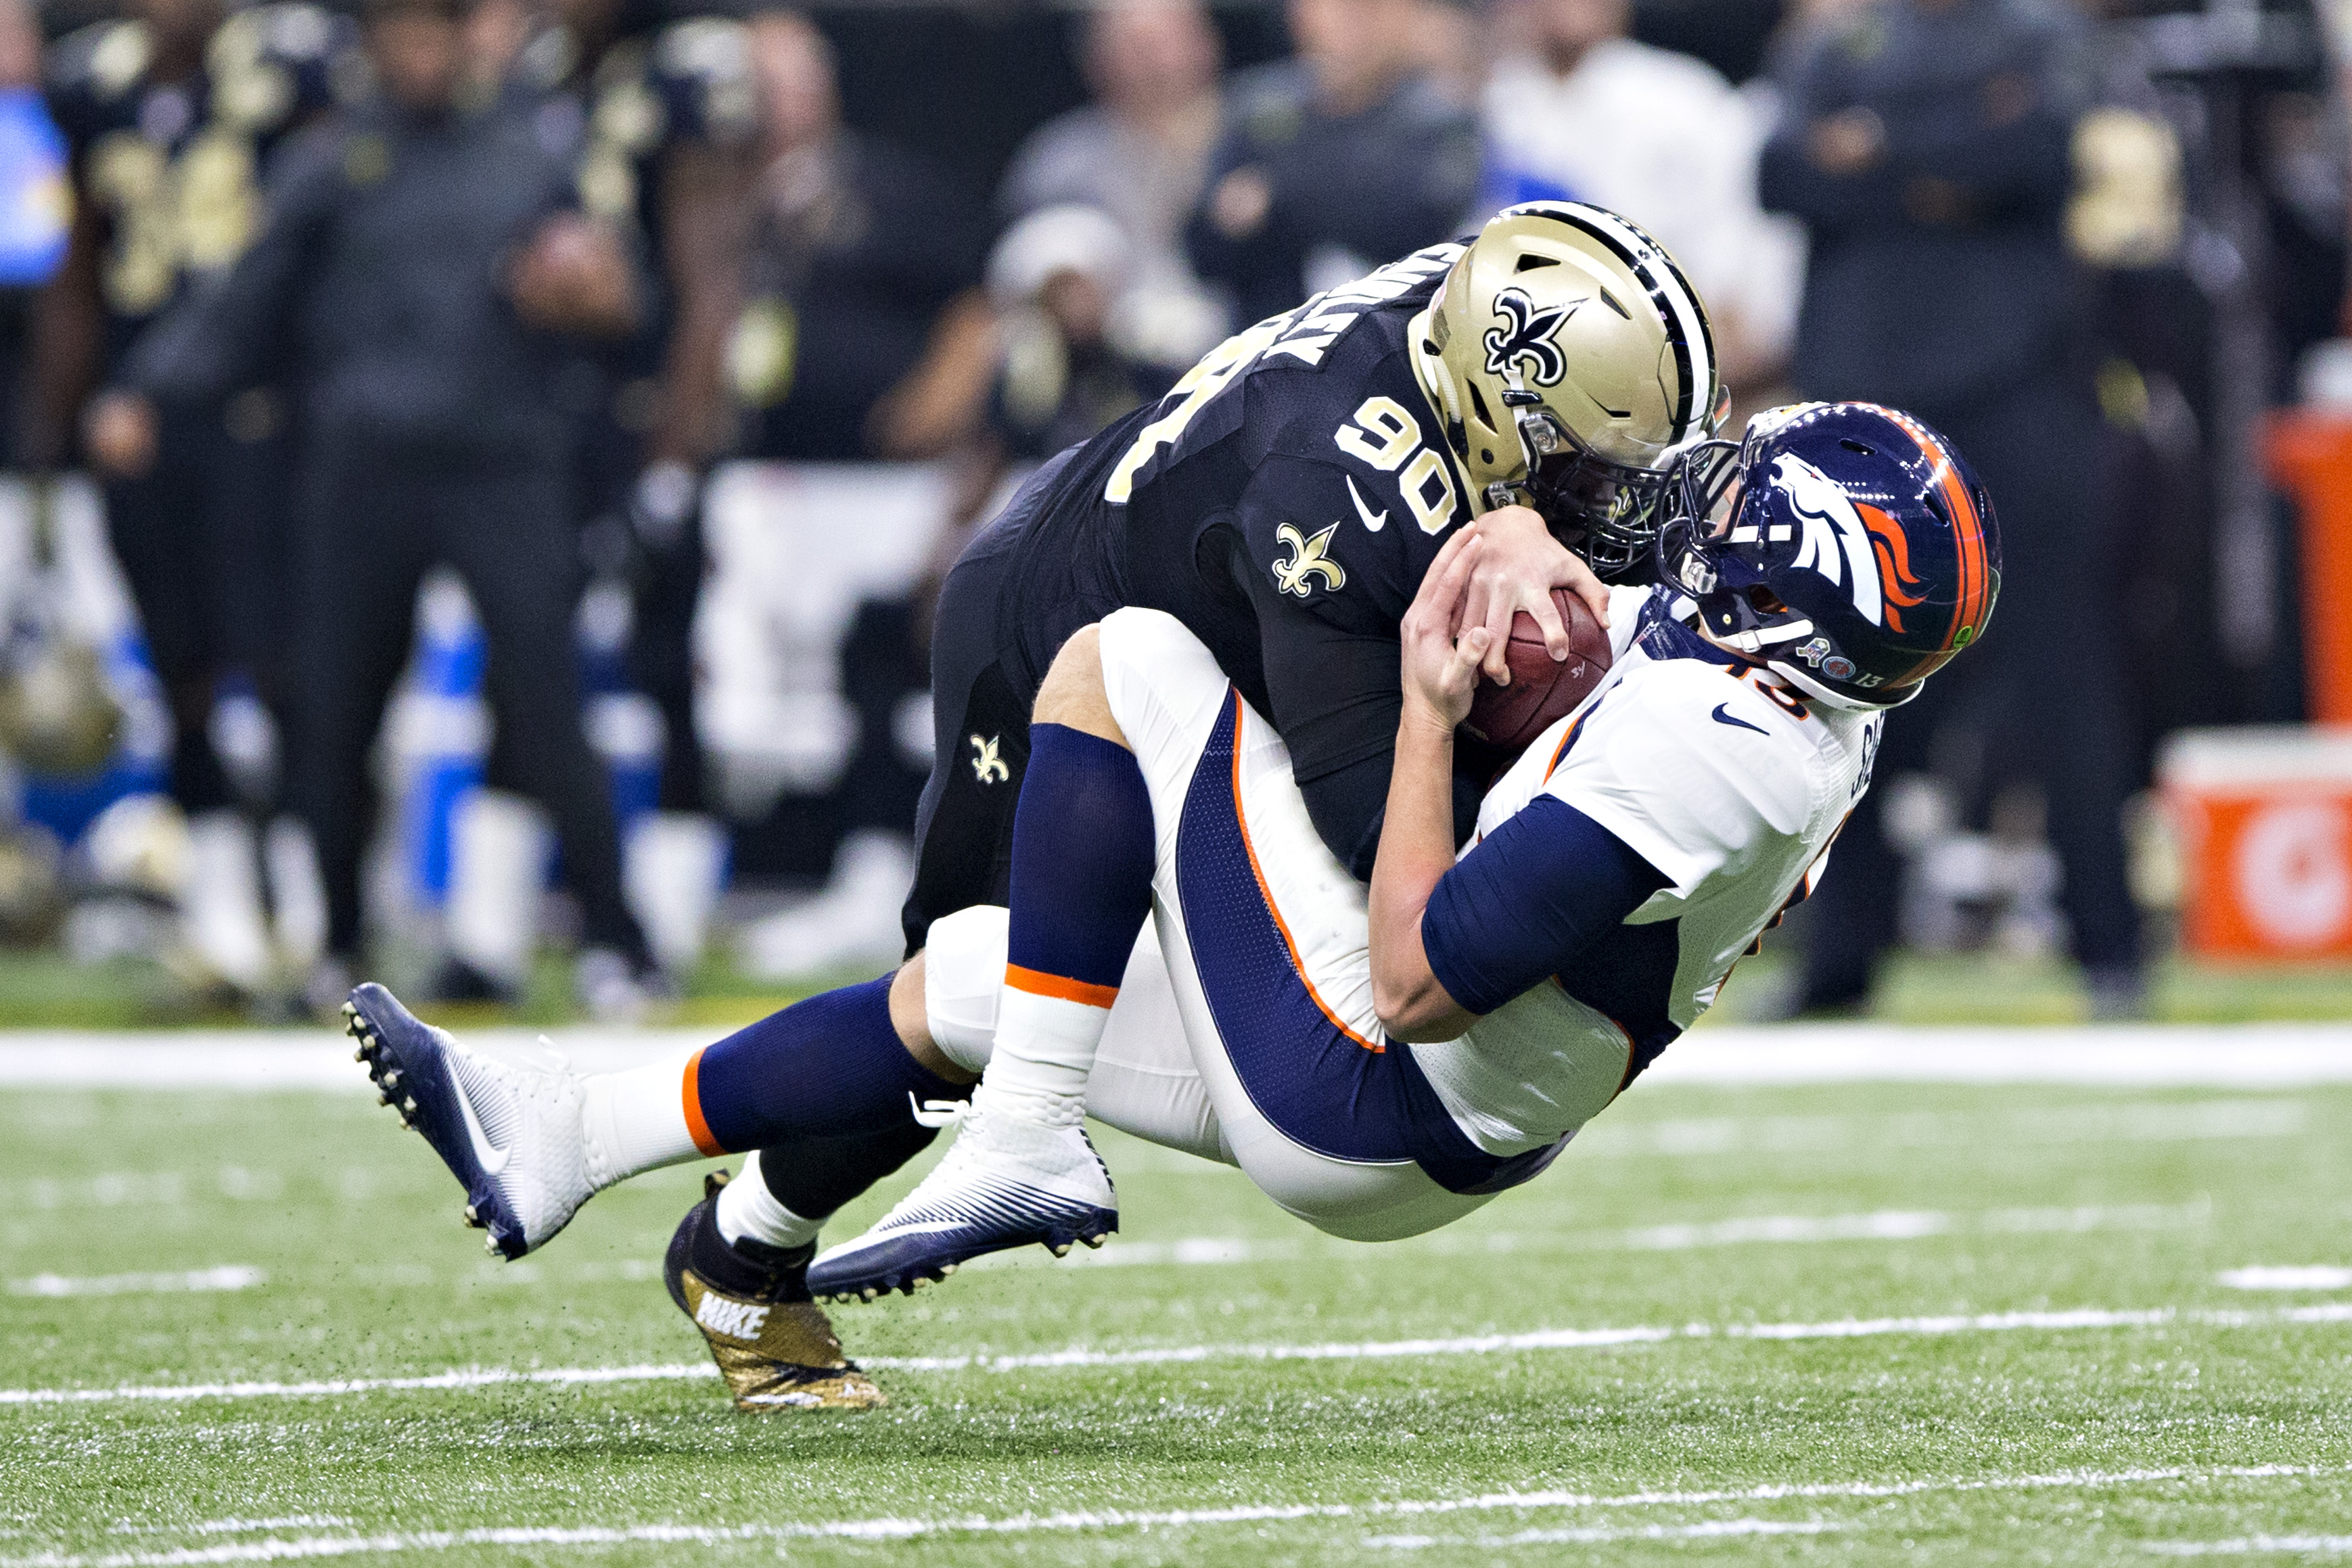 623031568-denver-broncos-v-new-orleans-saints.jpg